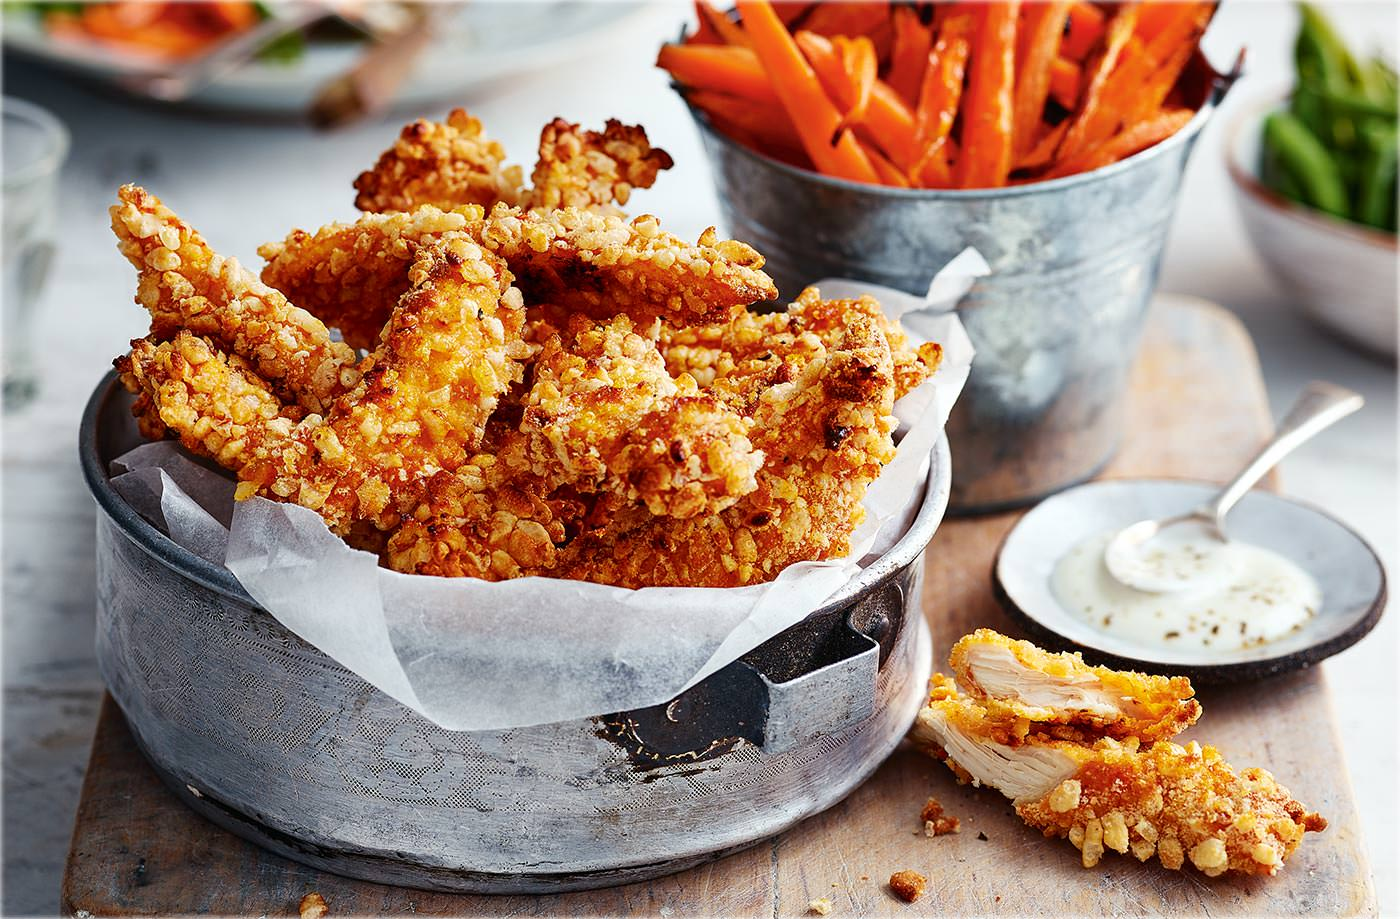 Crunchy chicken goujons with carrot 'fries'